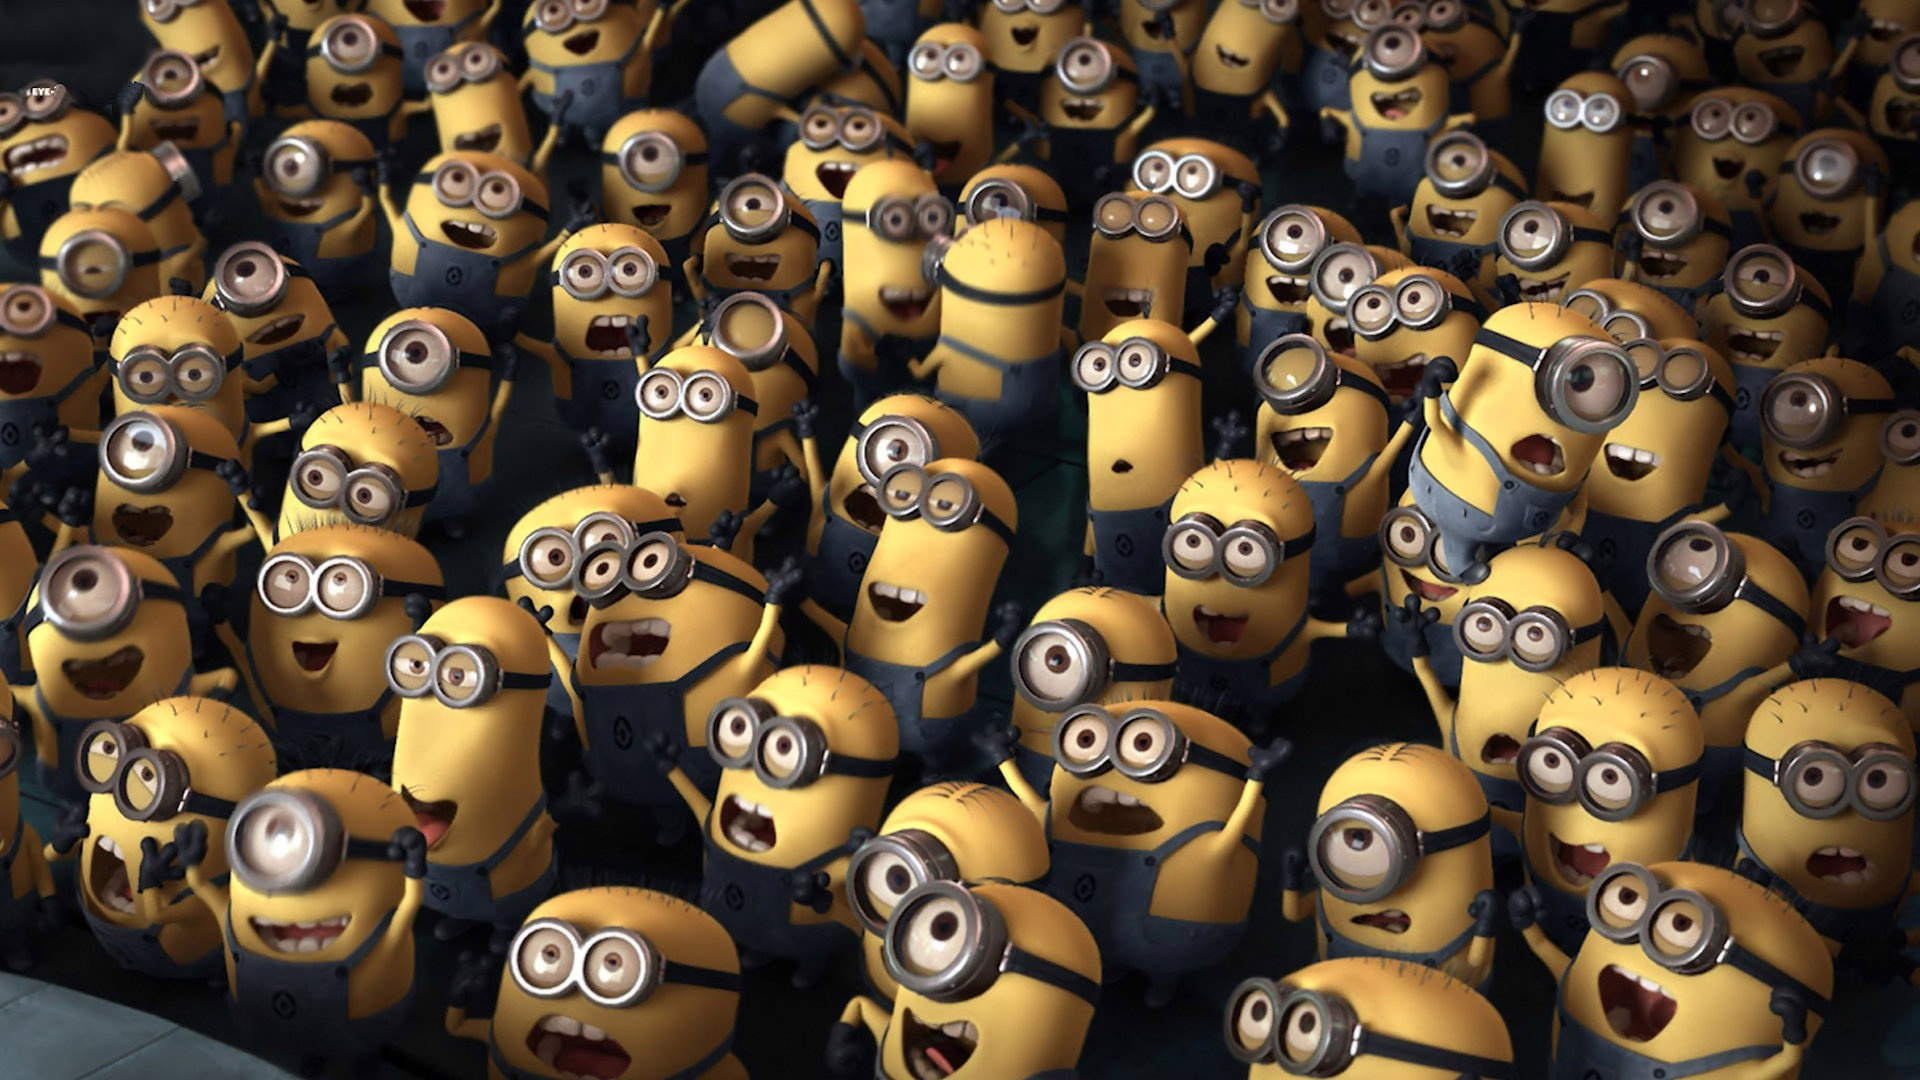 minion-1920x1080-Need-iPhone-S-Plus-Background-for-IPhoneSPlus-Follow-iPhone-wallpaper-wpc9007663